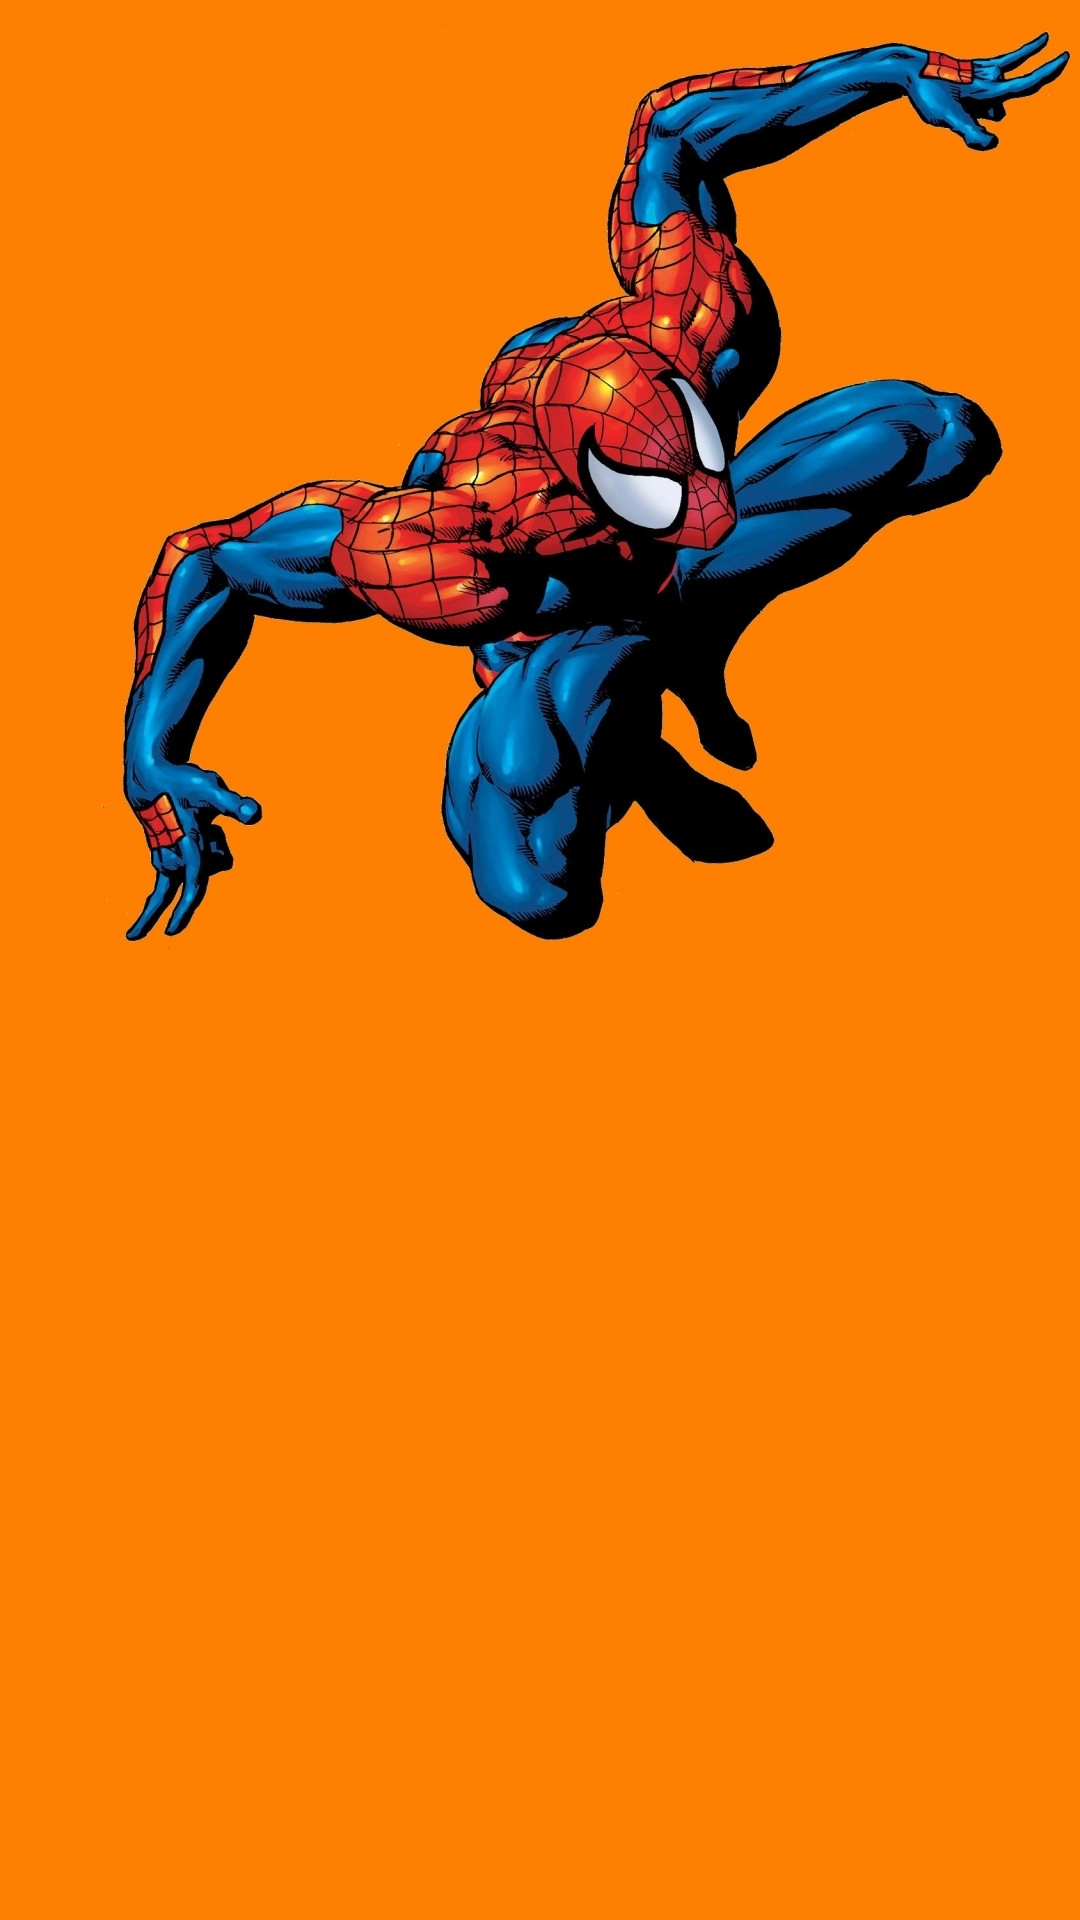 Spiderman Background HD for Iphone.